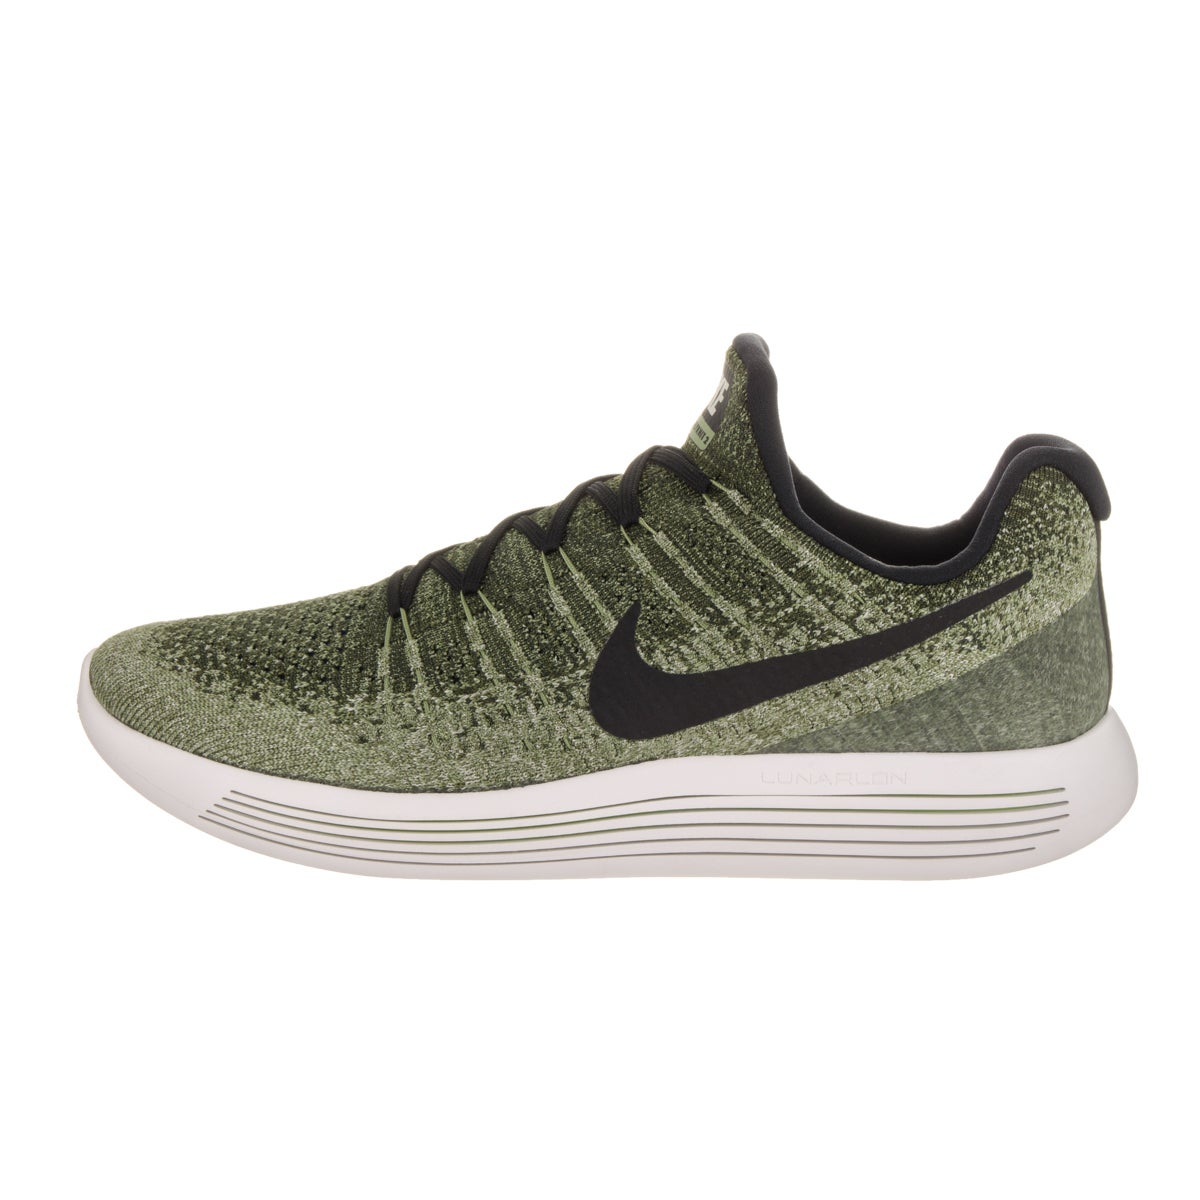 c629d5b106d2 Shop Nike Men s Lunarepic Low Flyknit 2 Green Running Shoe - Free Shipping  Today - Overstock - 14311298